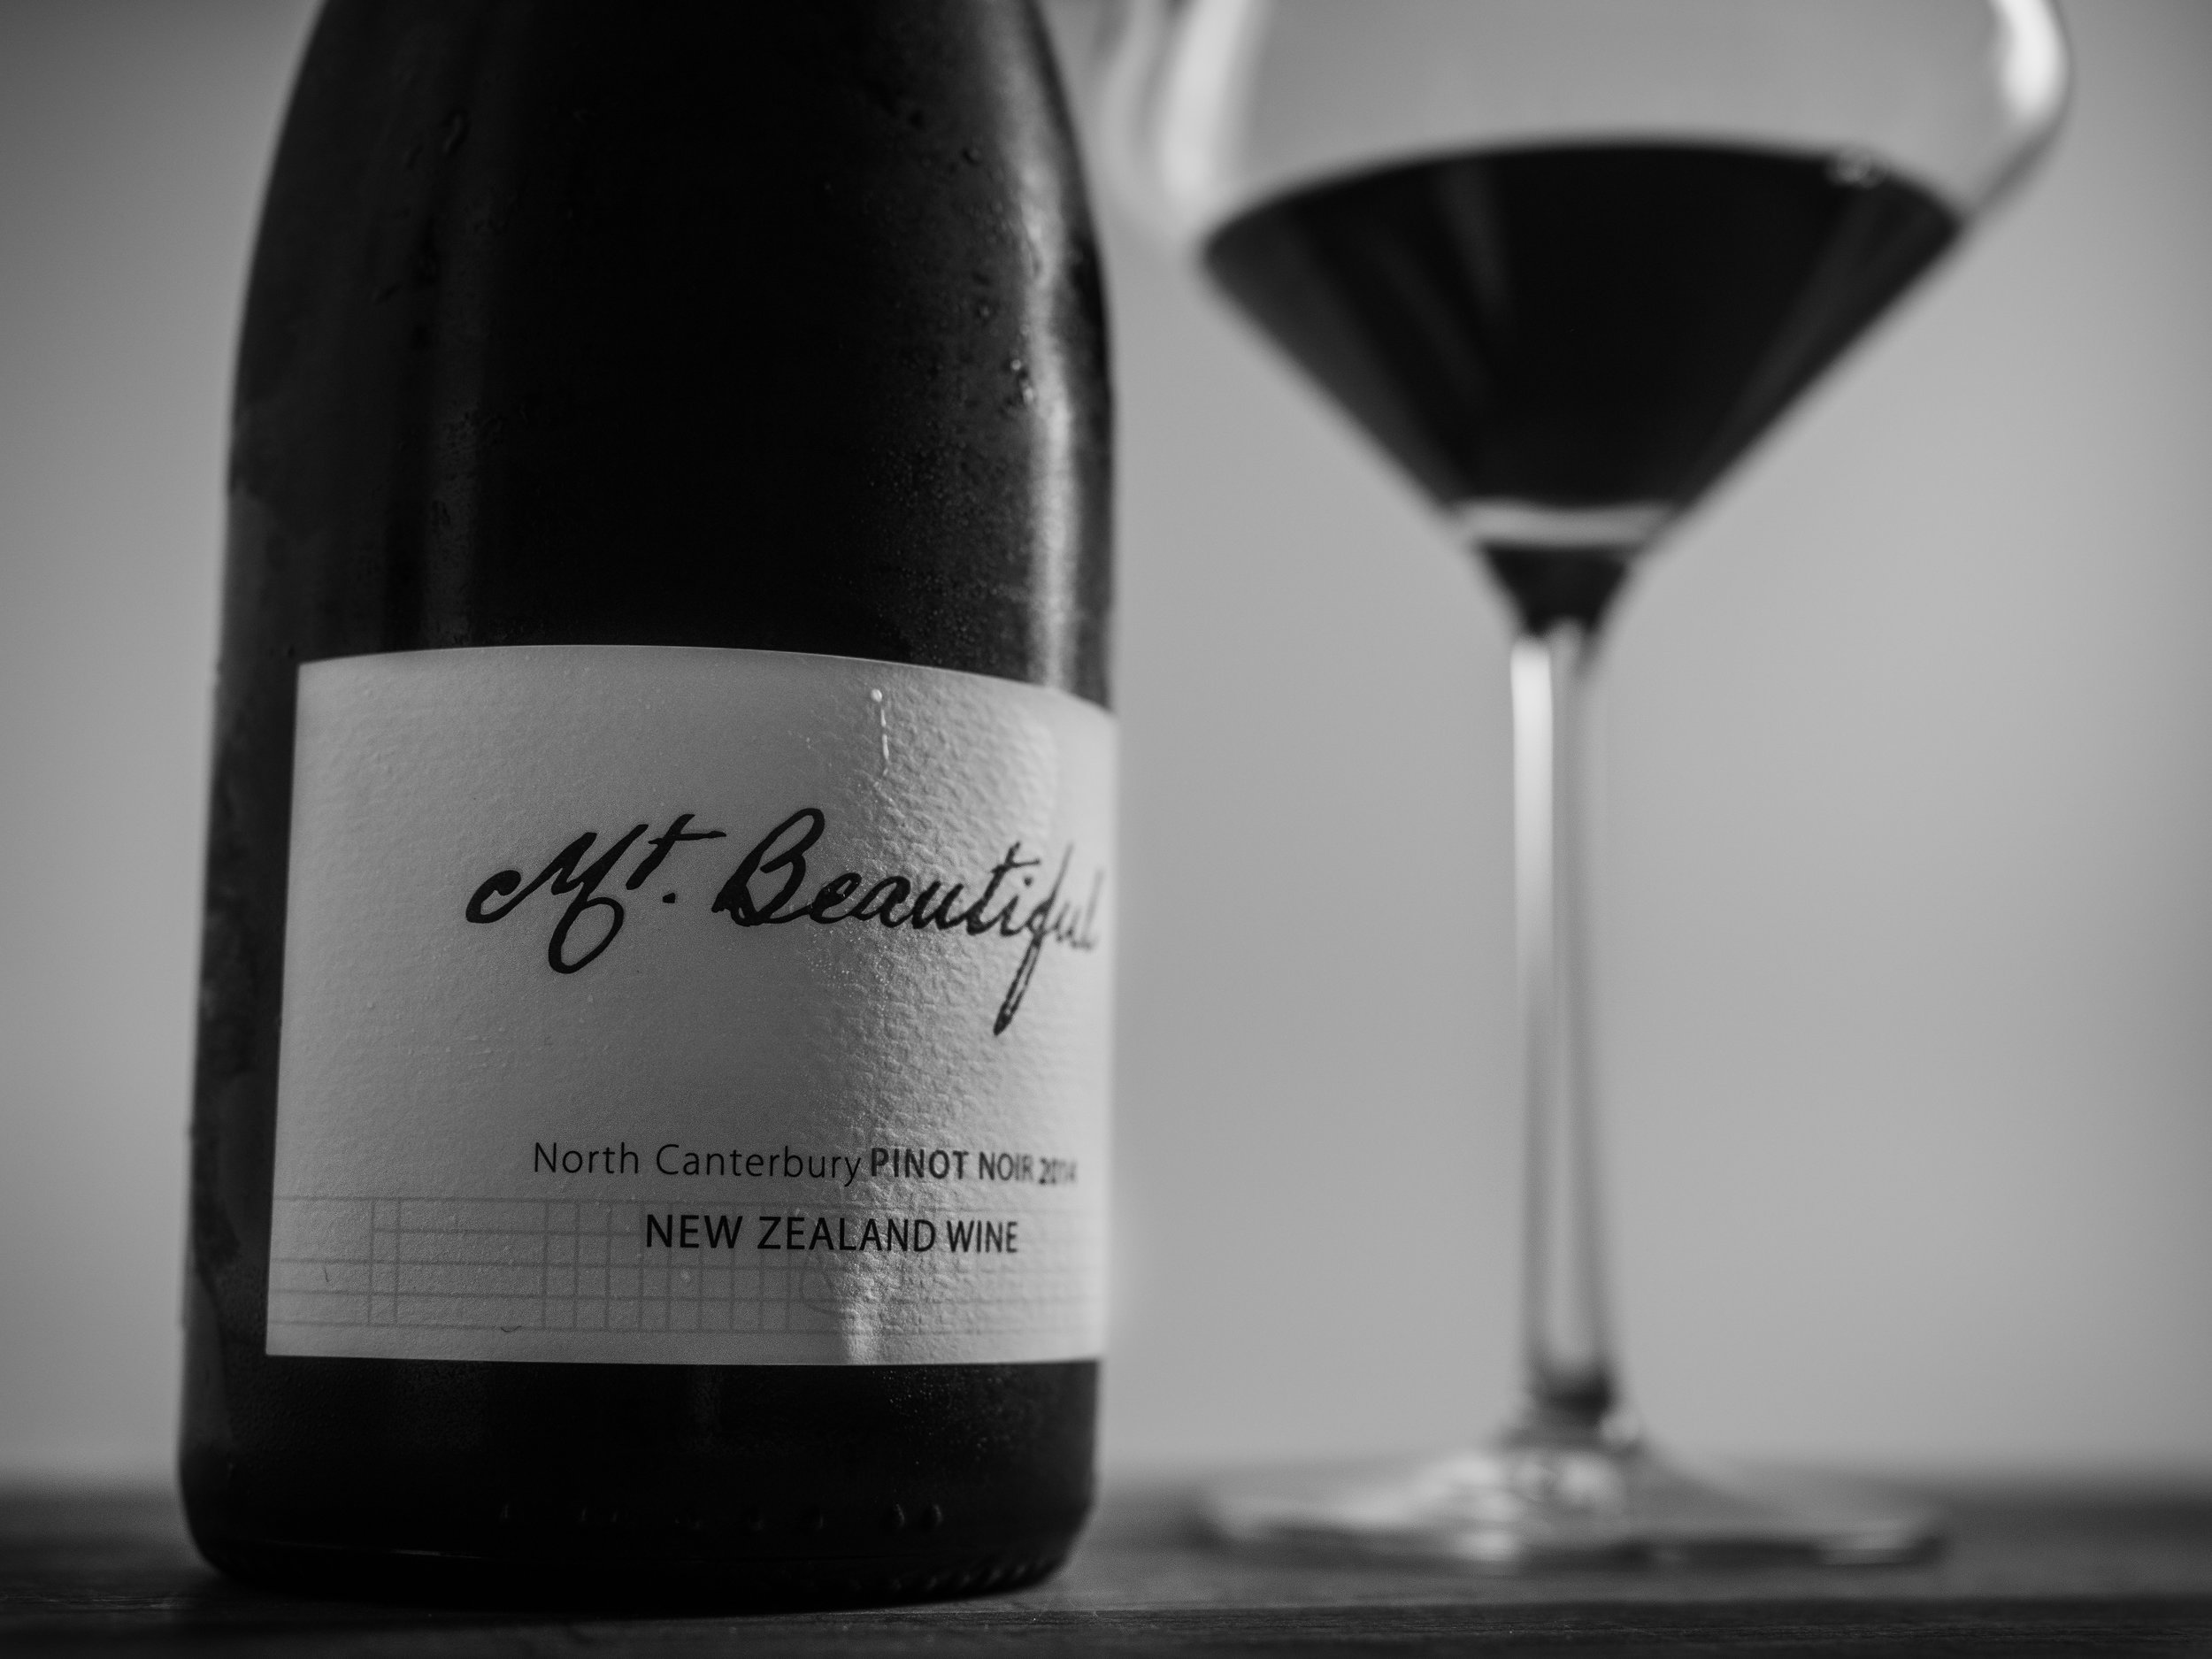 Musings by the Glass - The Pineapple-Kiwi Combination - Vintage Pinot Noir from Mt. Beautiful Winery in New Zealand